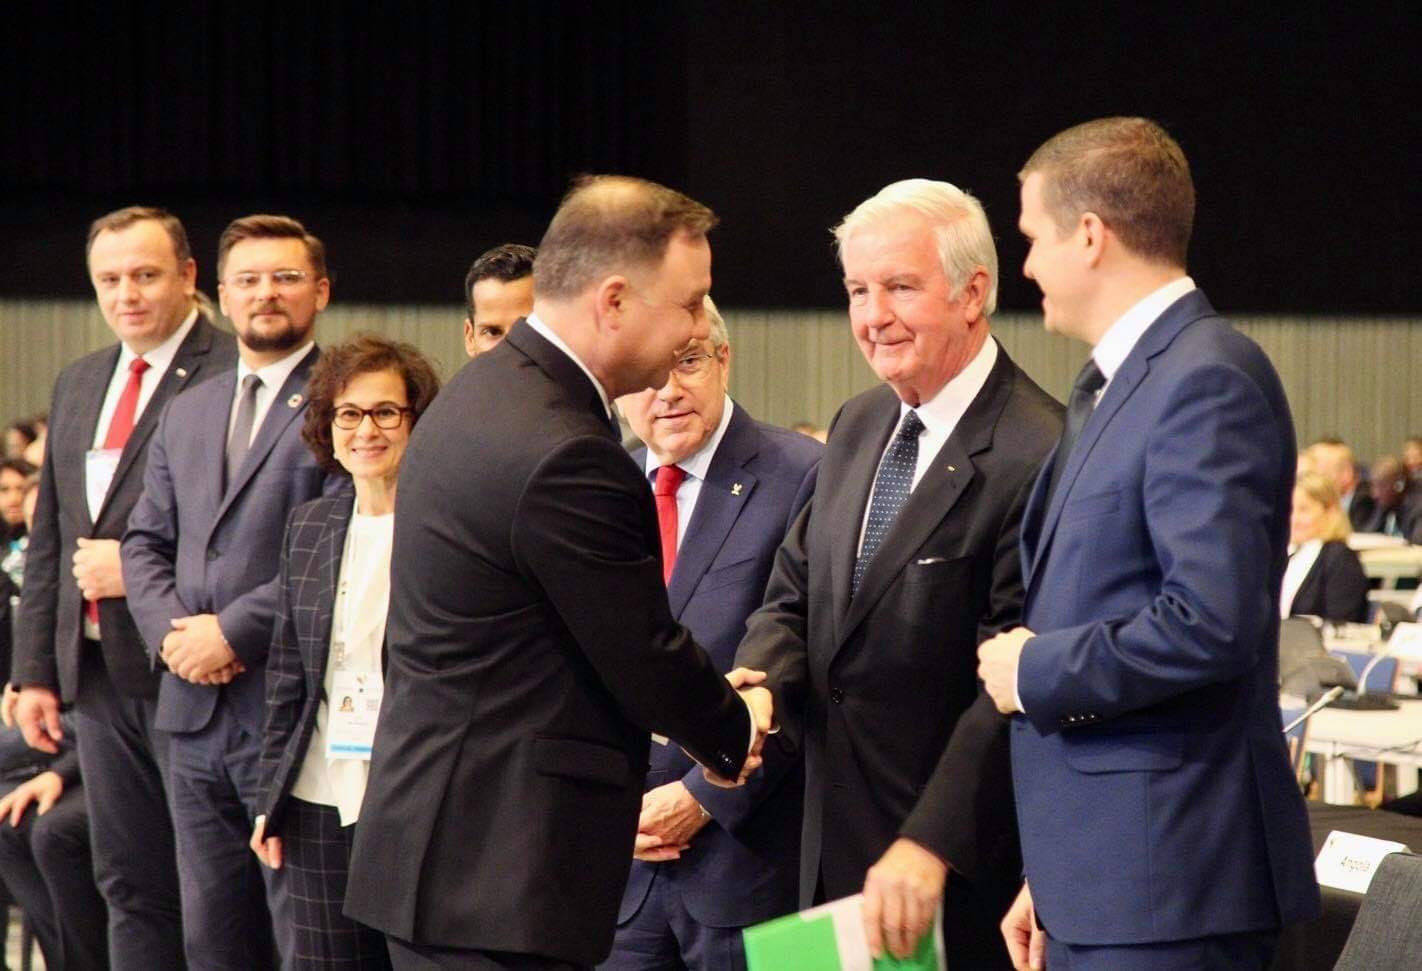 Afterwards Duda met with senior officials, including WADA President Sir Craig Reedie ©Polish Ministry of Sport and Tourism